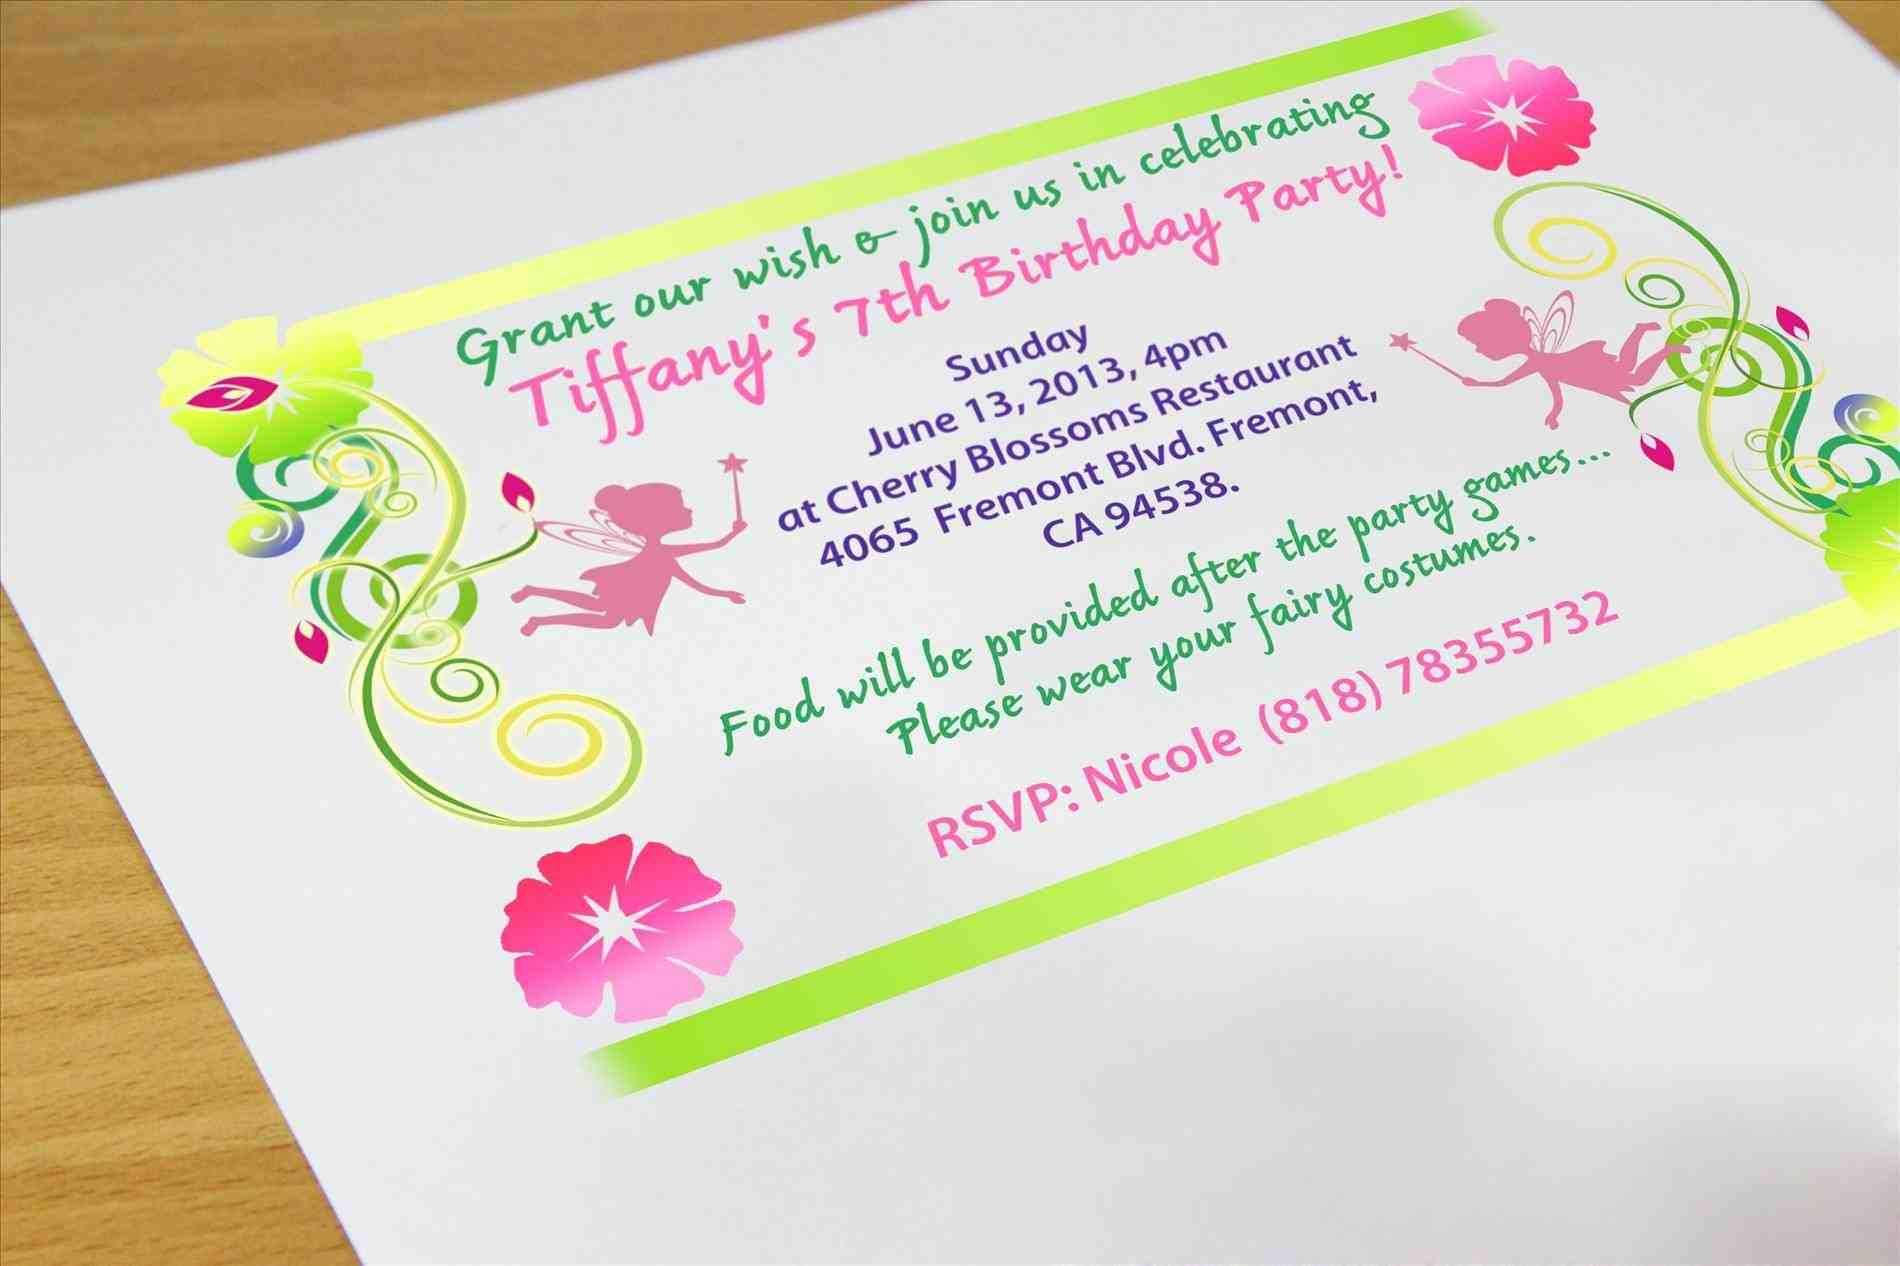 seventh birthday invitation wording - Forte.euforic.co